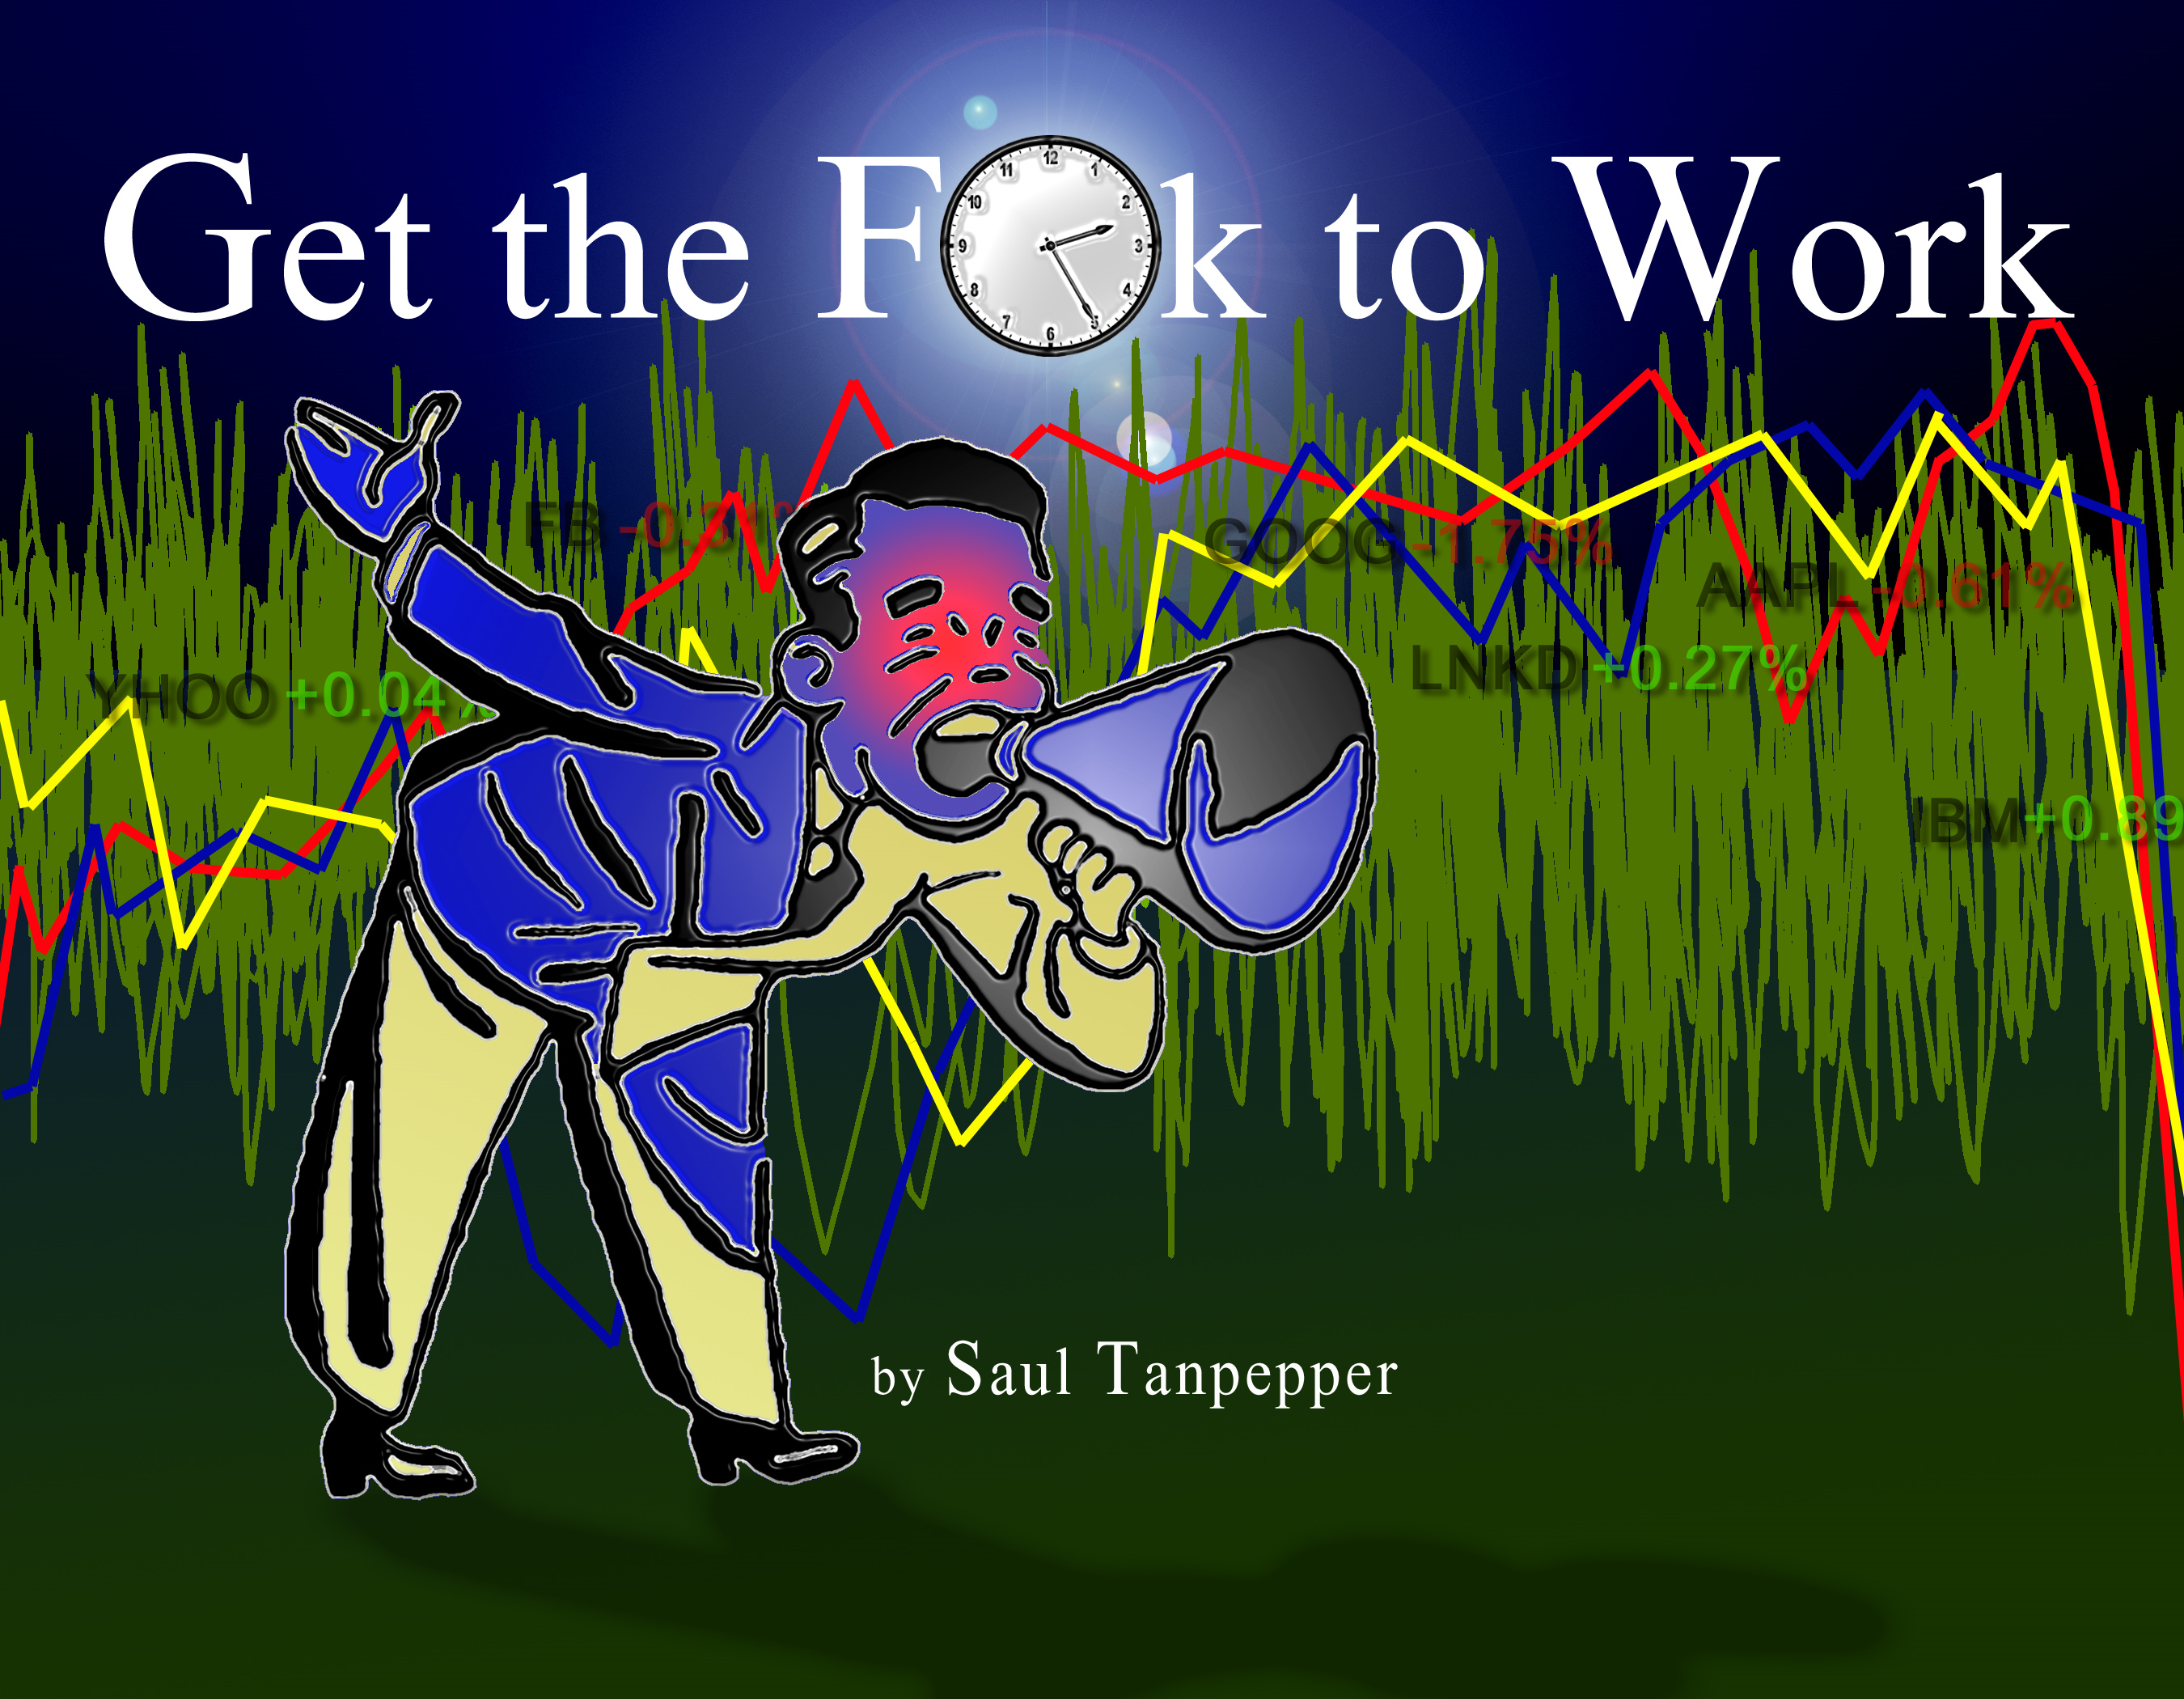 Get the F**k to Work (text-only edition) By: Saul Tanpepper